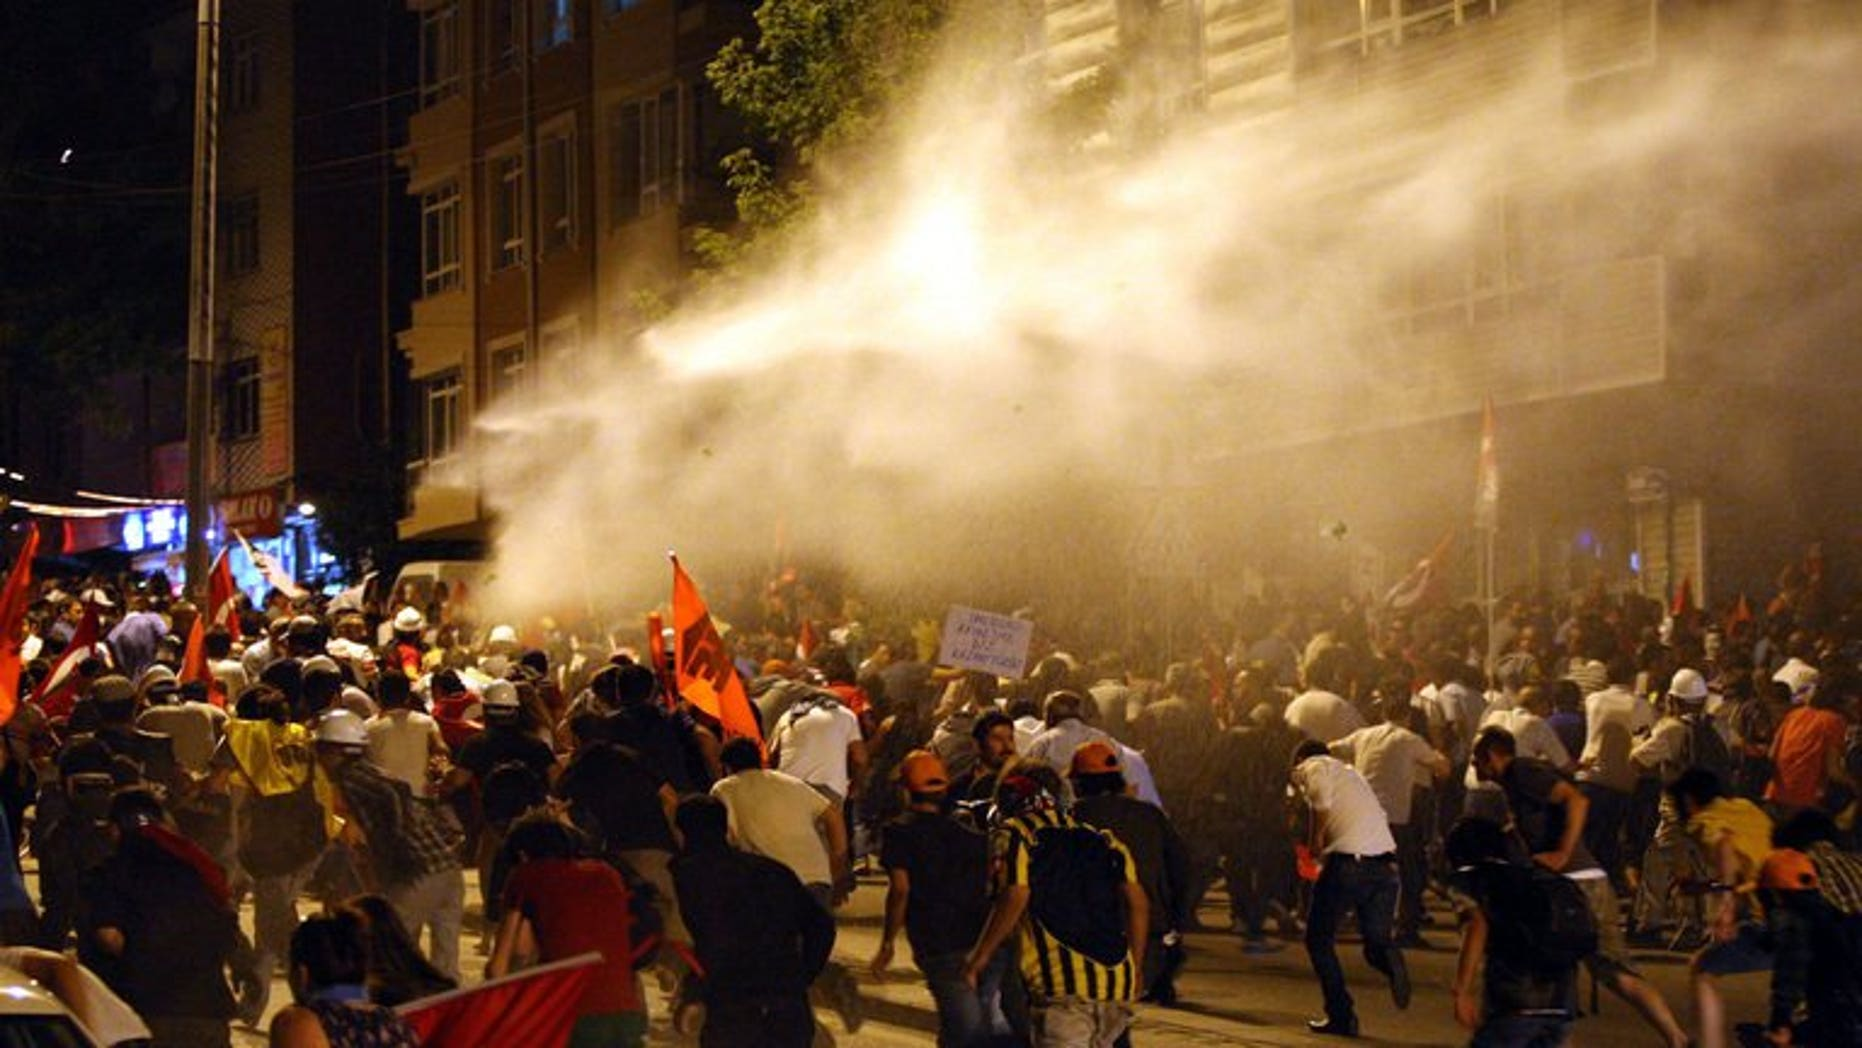 Protesters take cover from water cannon during clashes with police in Ankara on June 25, 2013. The Council of Europe's human rights commissioner Nils Muiznieks has urged an investigation into the use of excessive police force during a crackdown on anti-government protests in Turkey last month.